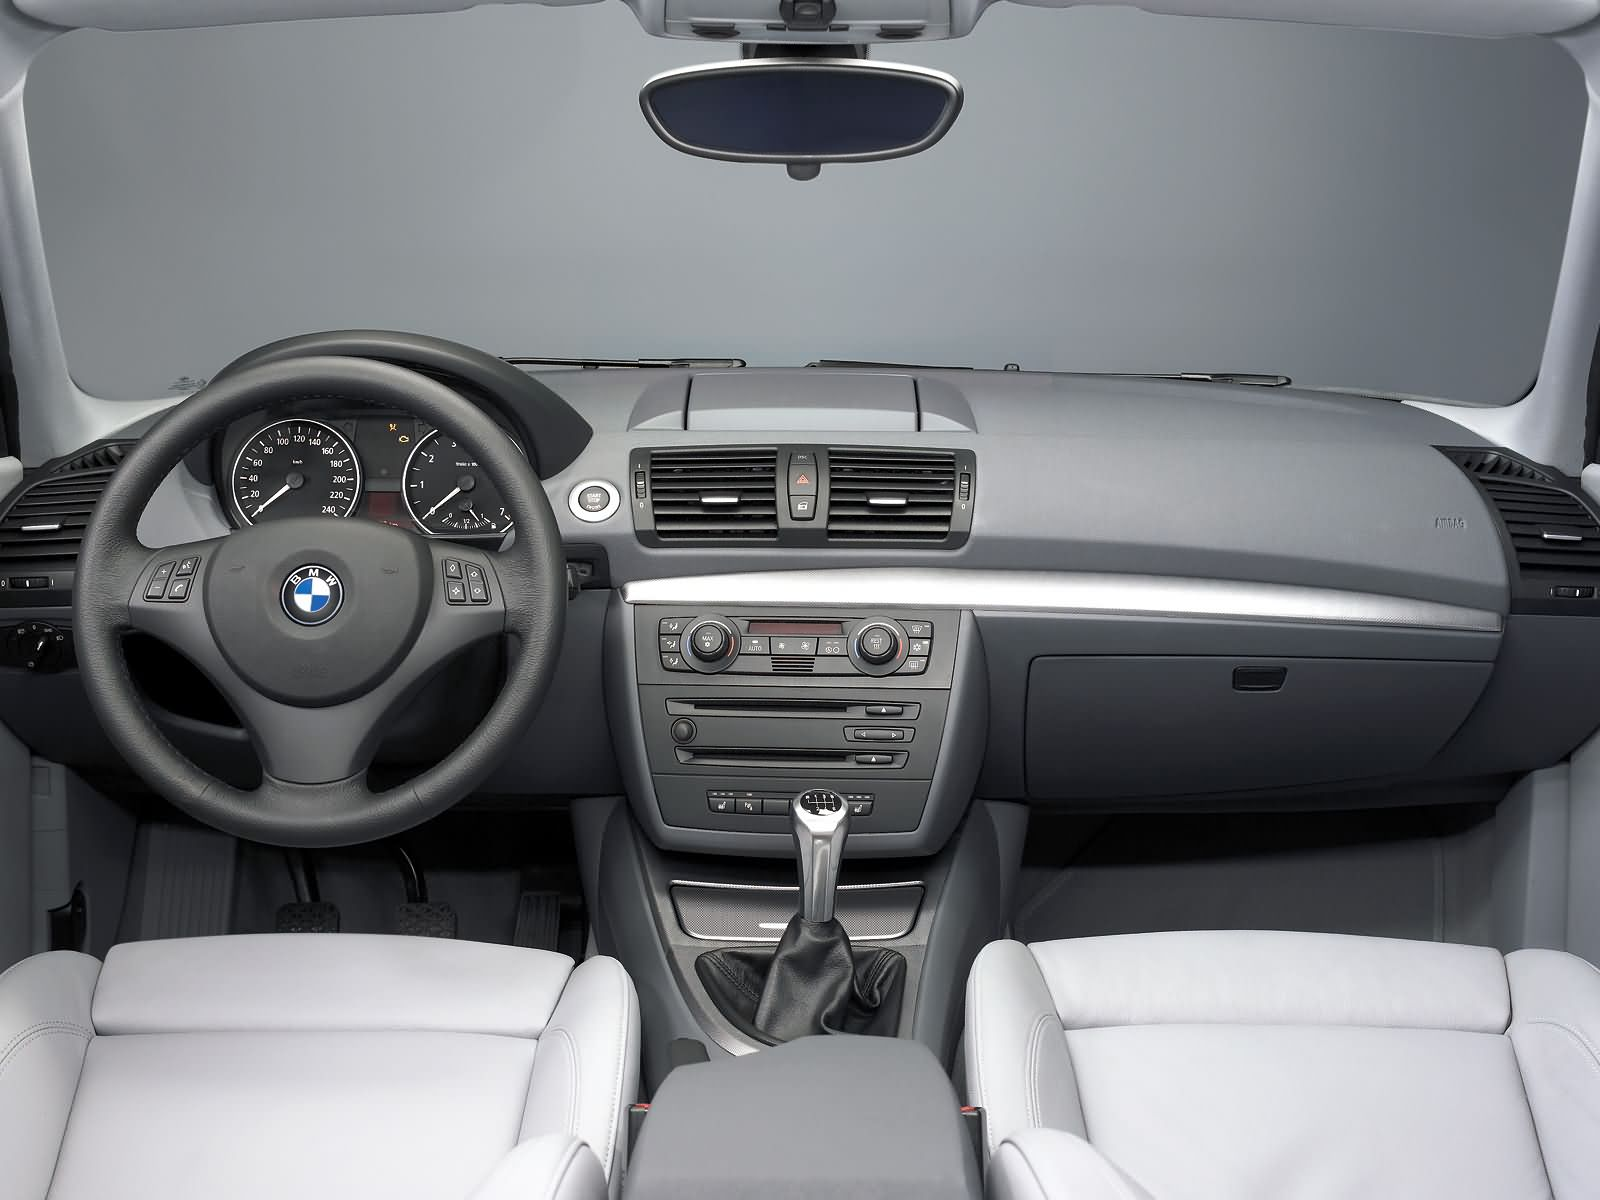 bmw 1 series 5 door e87 picture 22136 bmw photo. Black Bedroom Furniture Sets. Home Design Ideas